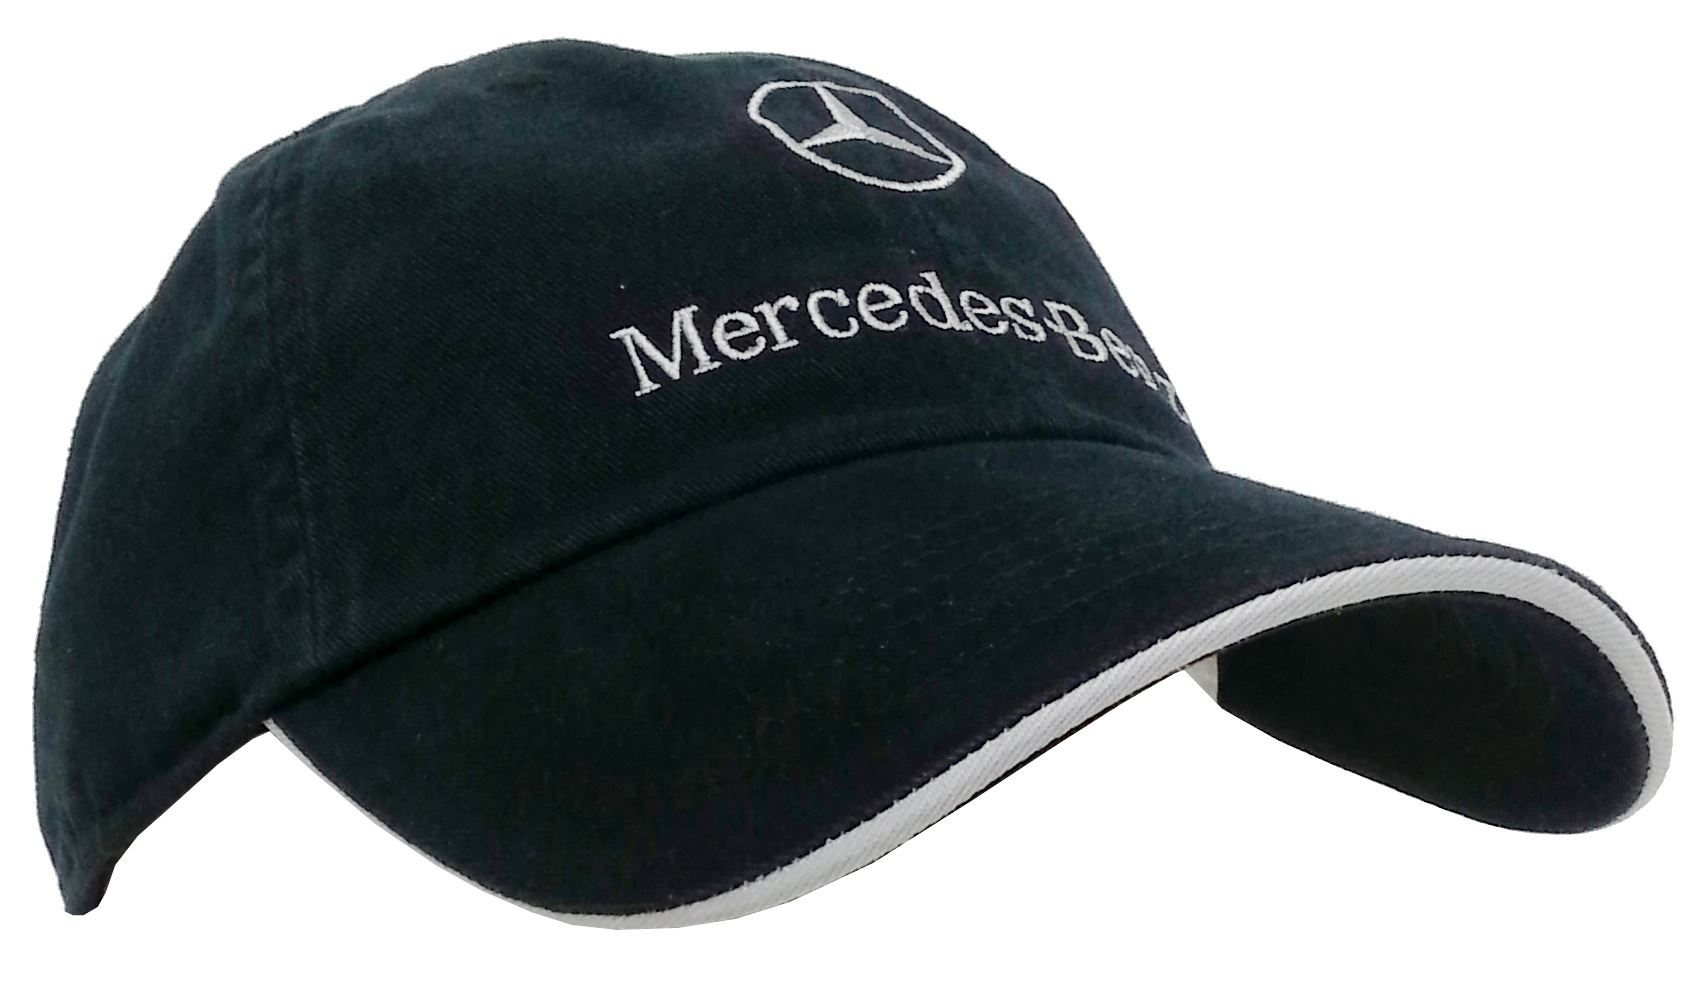 Mercedes benz black navy blue adult cotton mesh for Mercedes benz caps hats